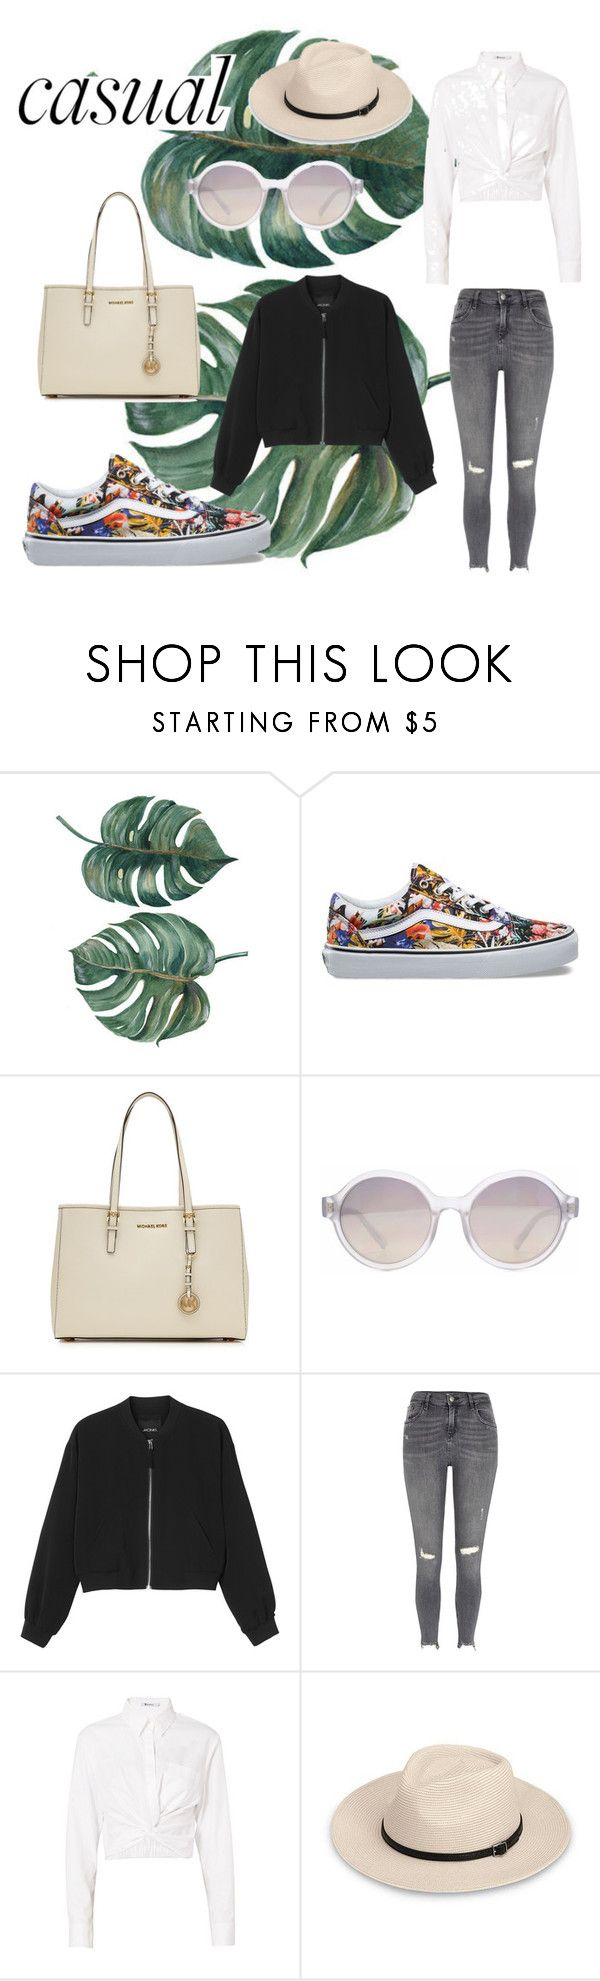 """""""Casually Casual - Contest"""" by jessica-riri ❤ liked on Polyvore featuring Vans, MICHAEL Michael Kors, HOOK LDN, Monki, River Island, T By Alexander Wang, casual and contest"""